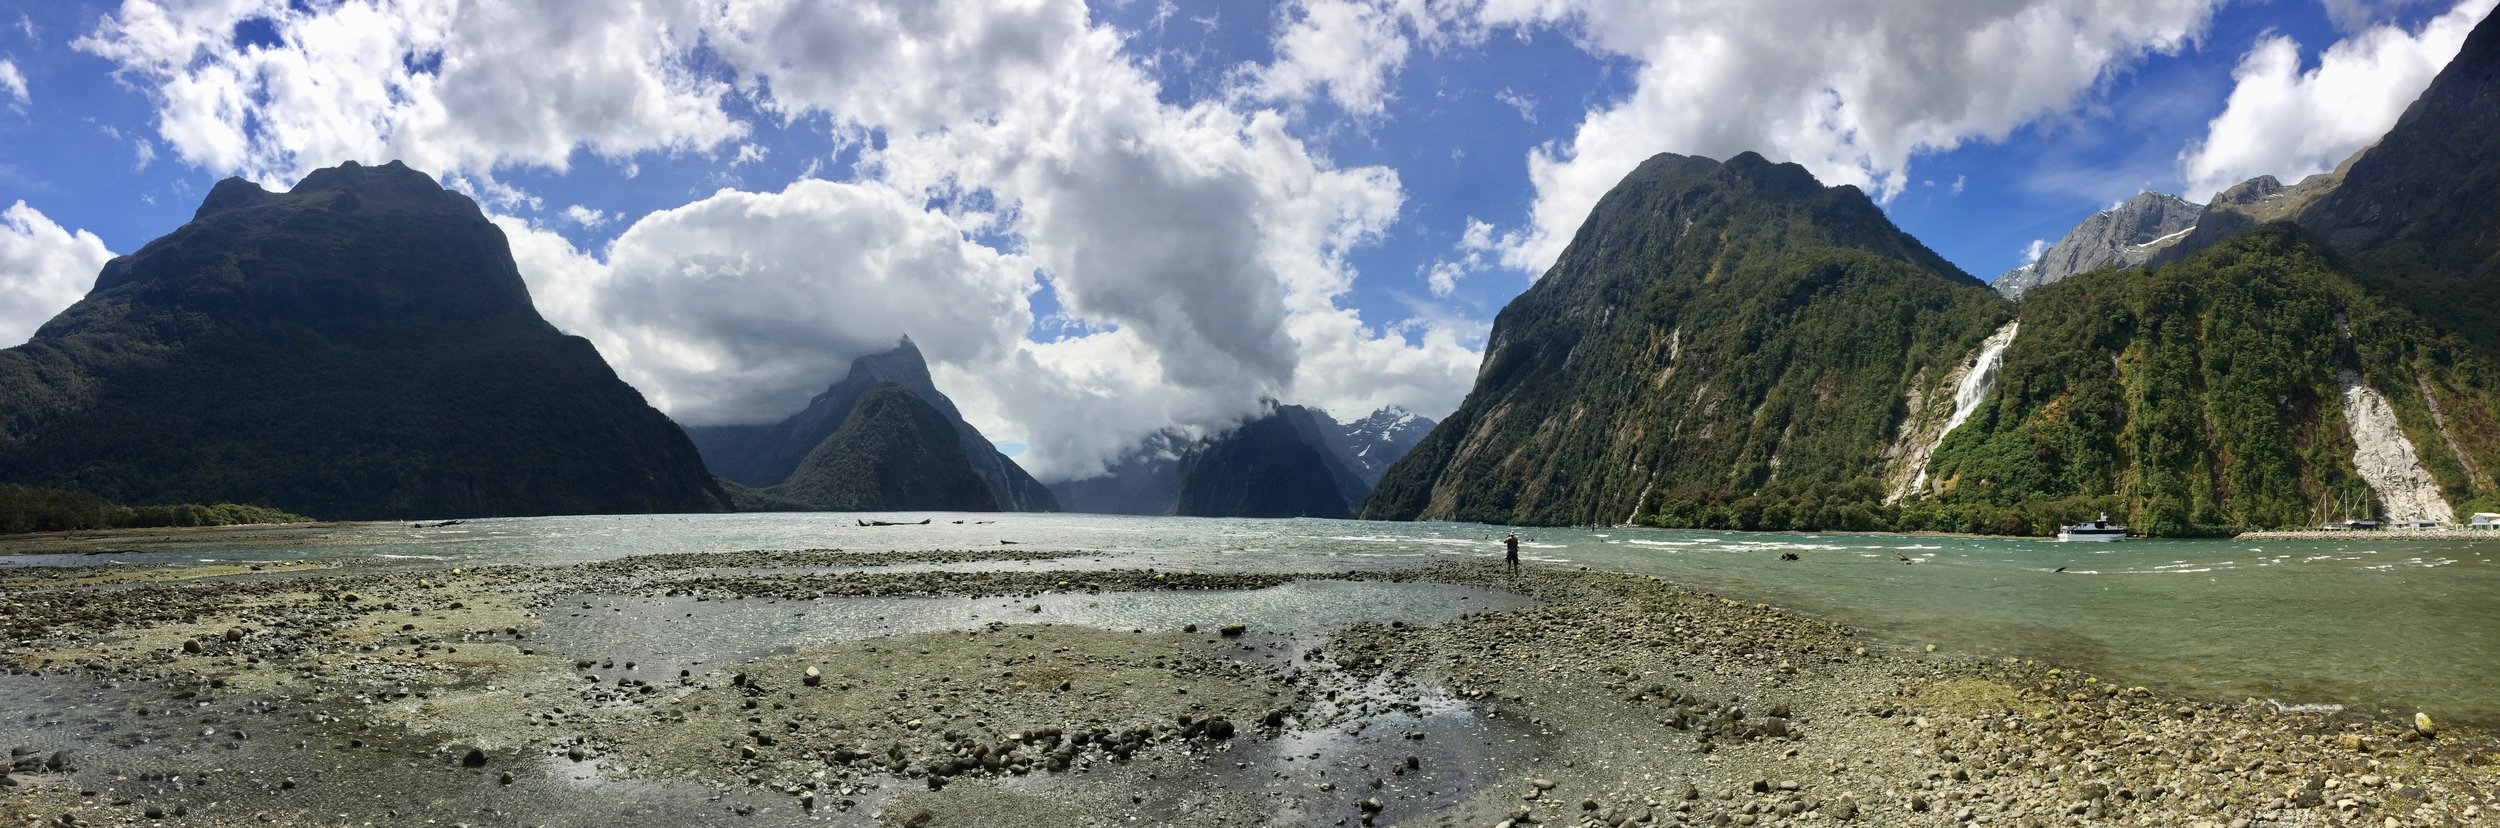 Arriving in Milford Sound with some sun and blue skies.